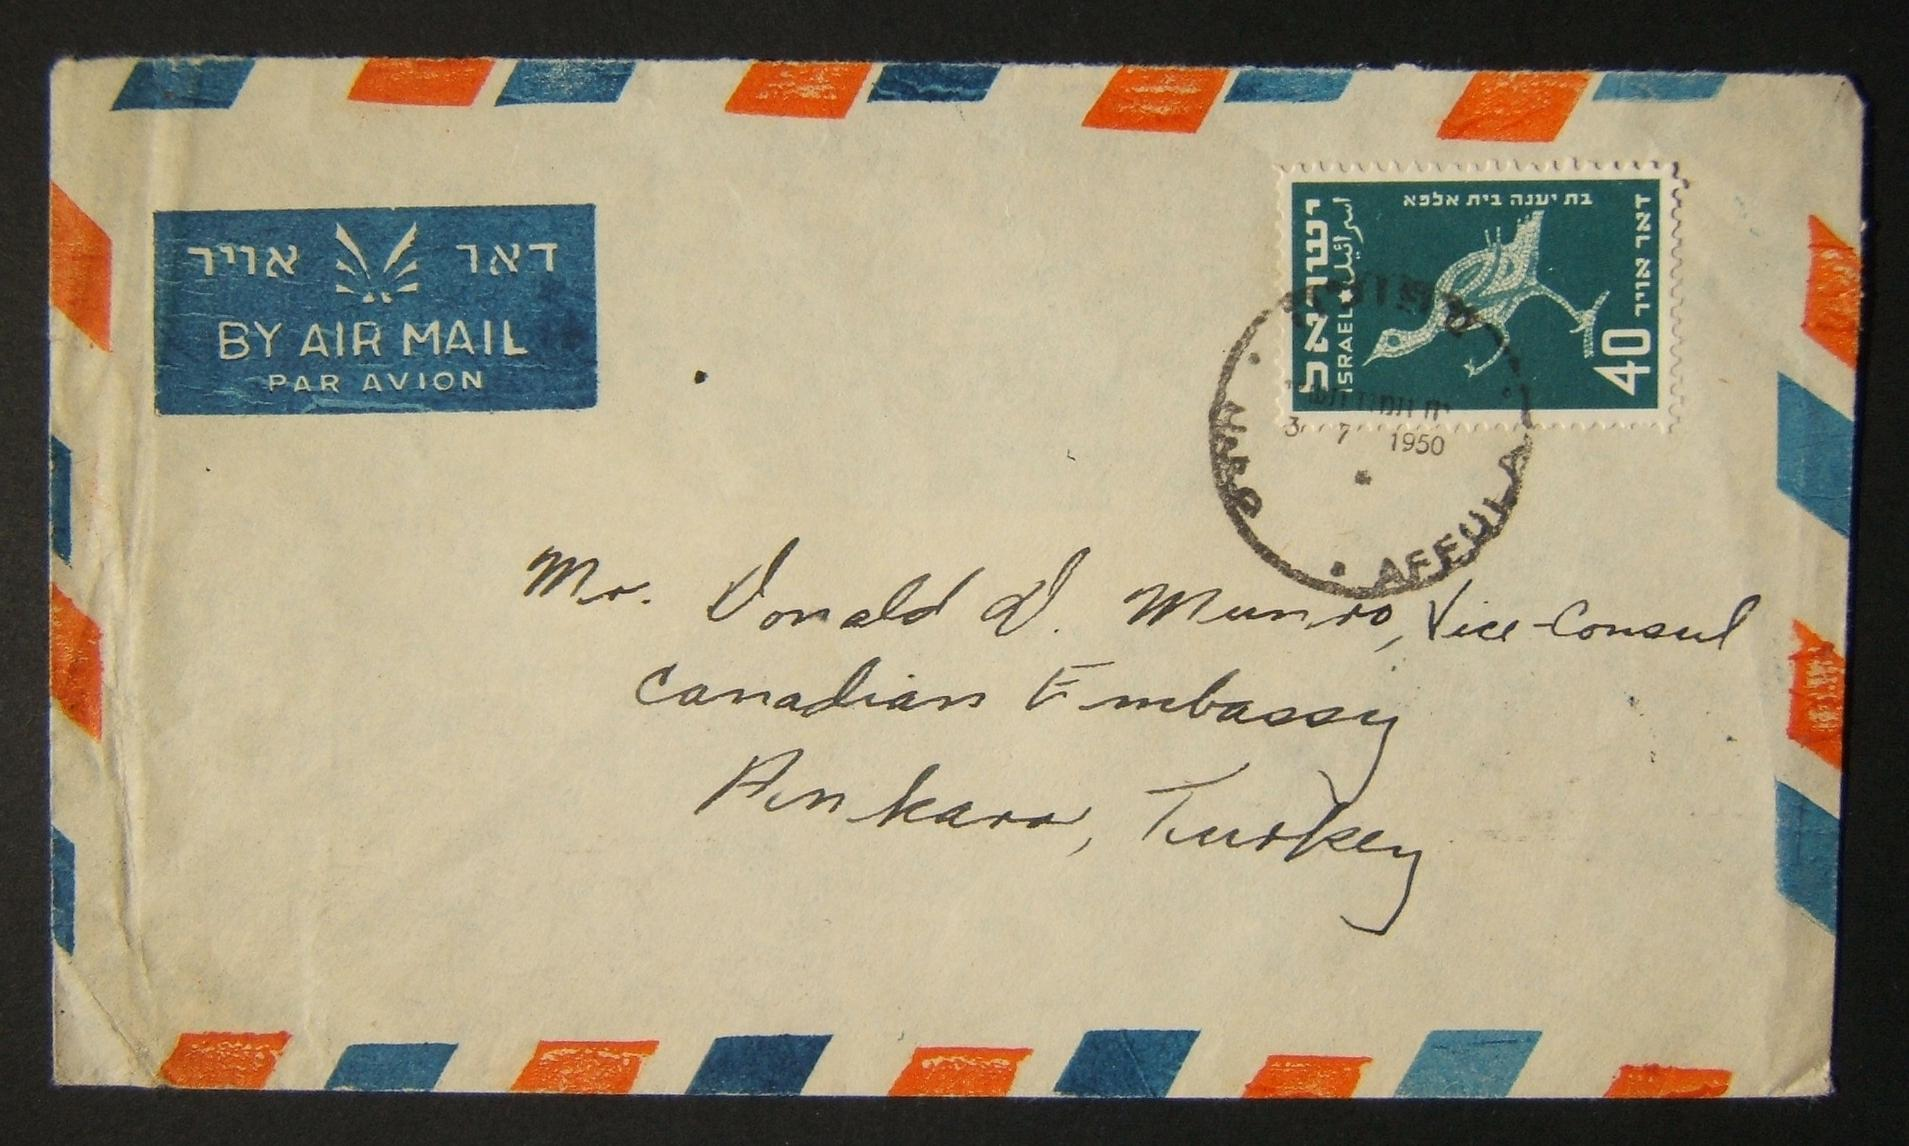 1950 1st airmail / PO's, rates & routes: 3-7-1950